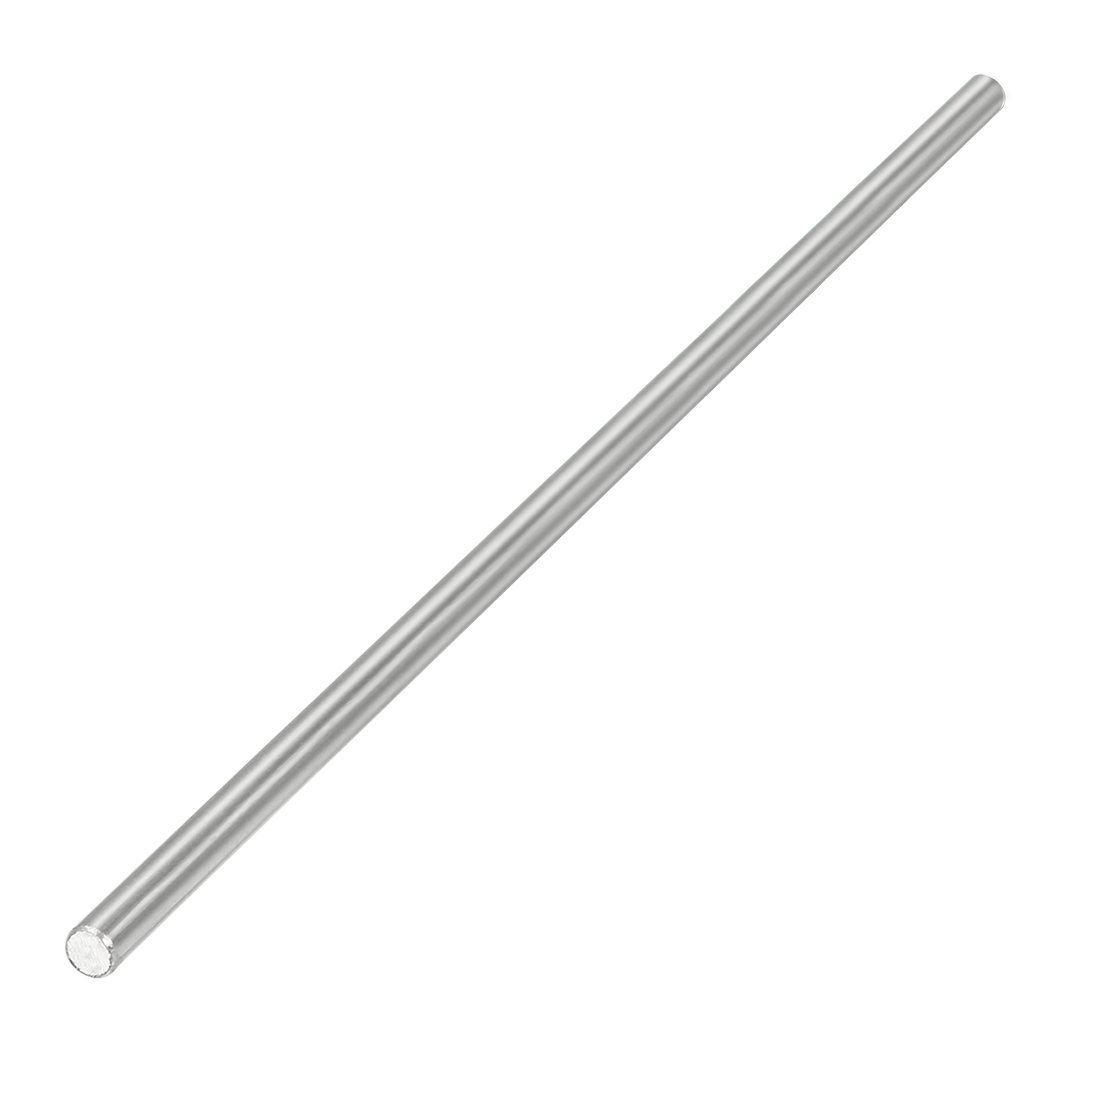 uxcell Round Shaft Rod Axle 304 Stainless Steel 2mm x 110mm for RC Toy Car